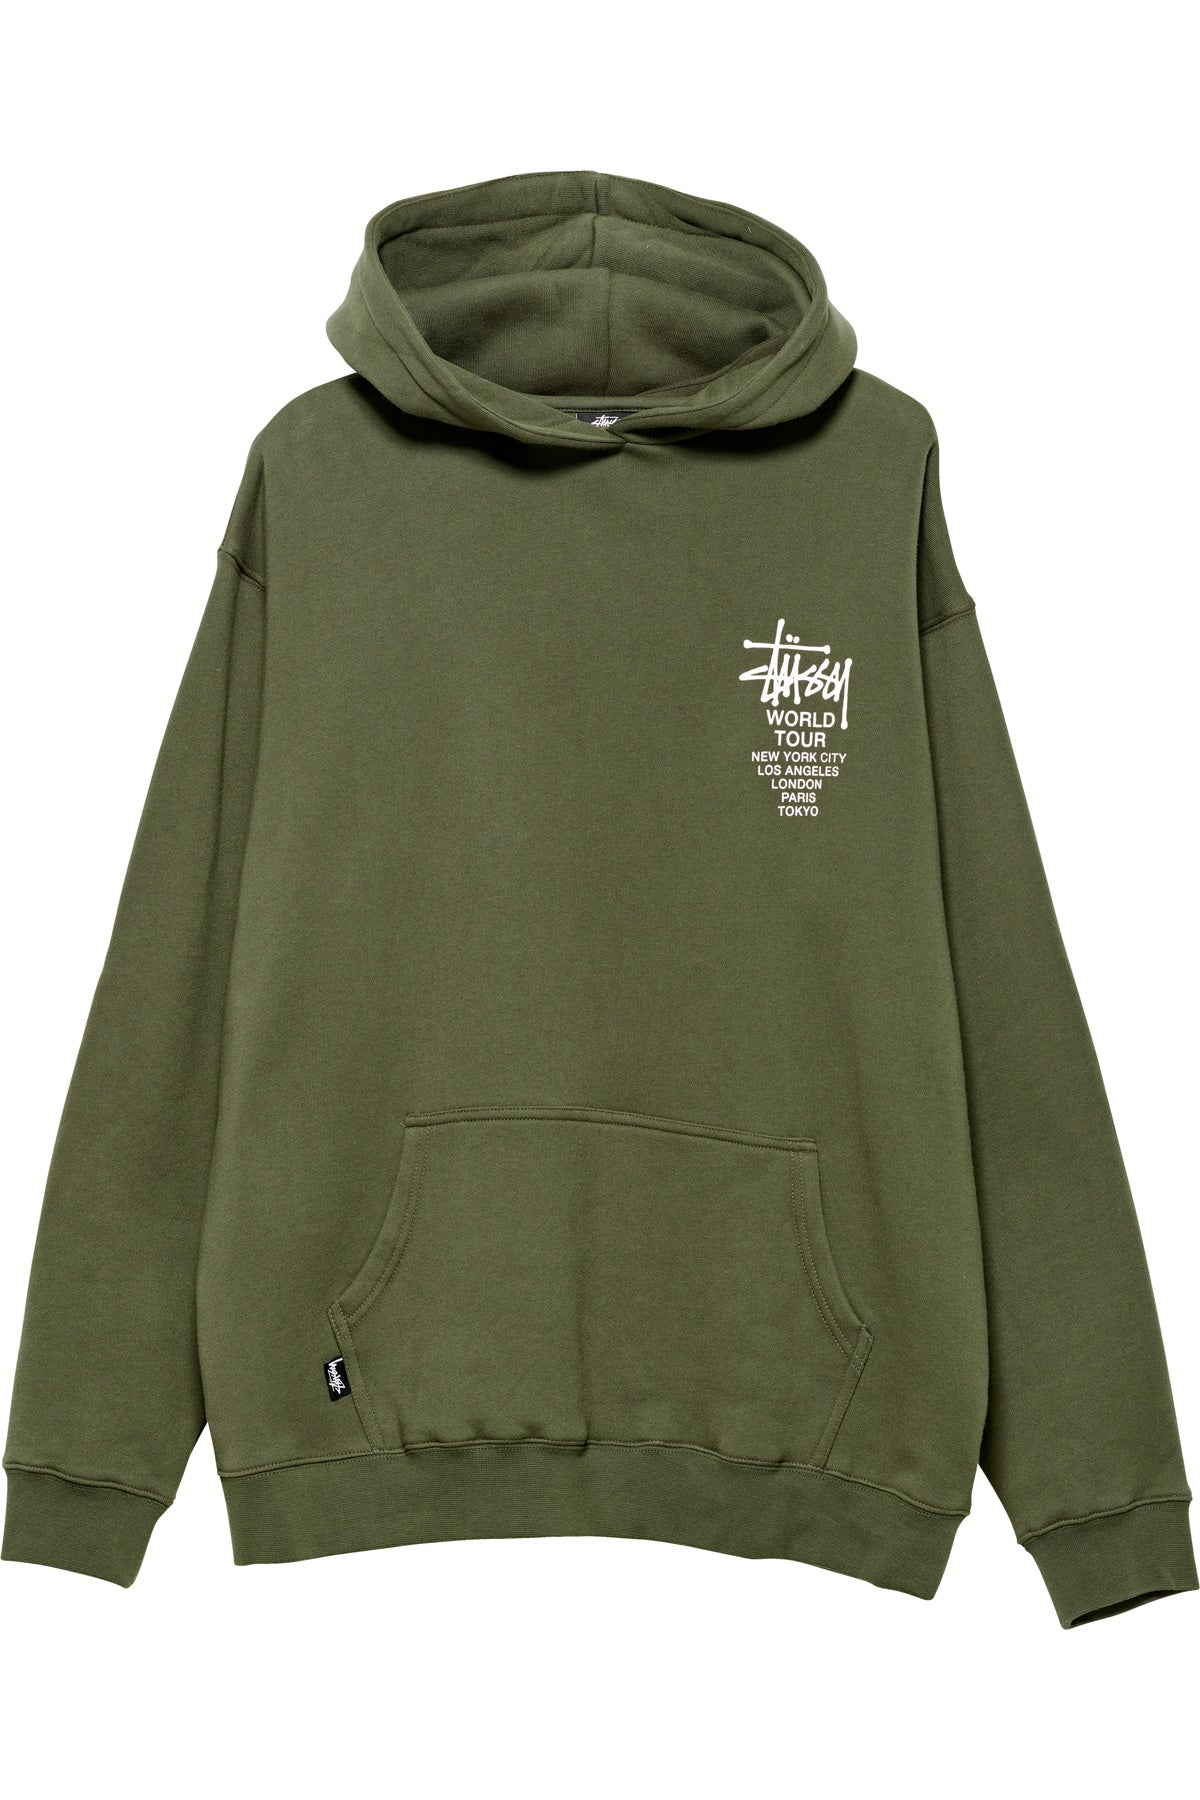 World Tour Hood - Stüssy Australia